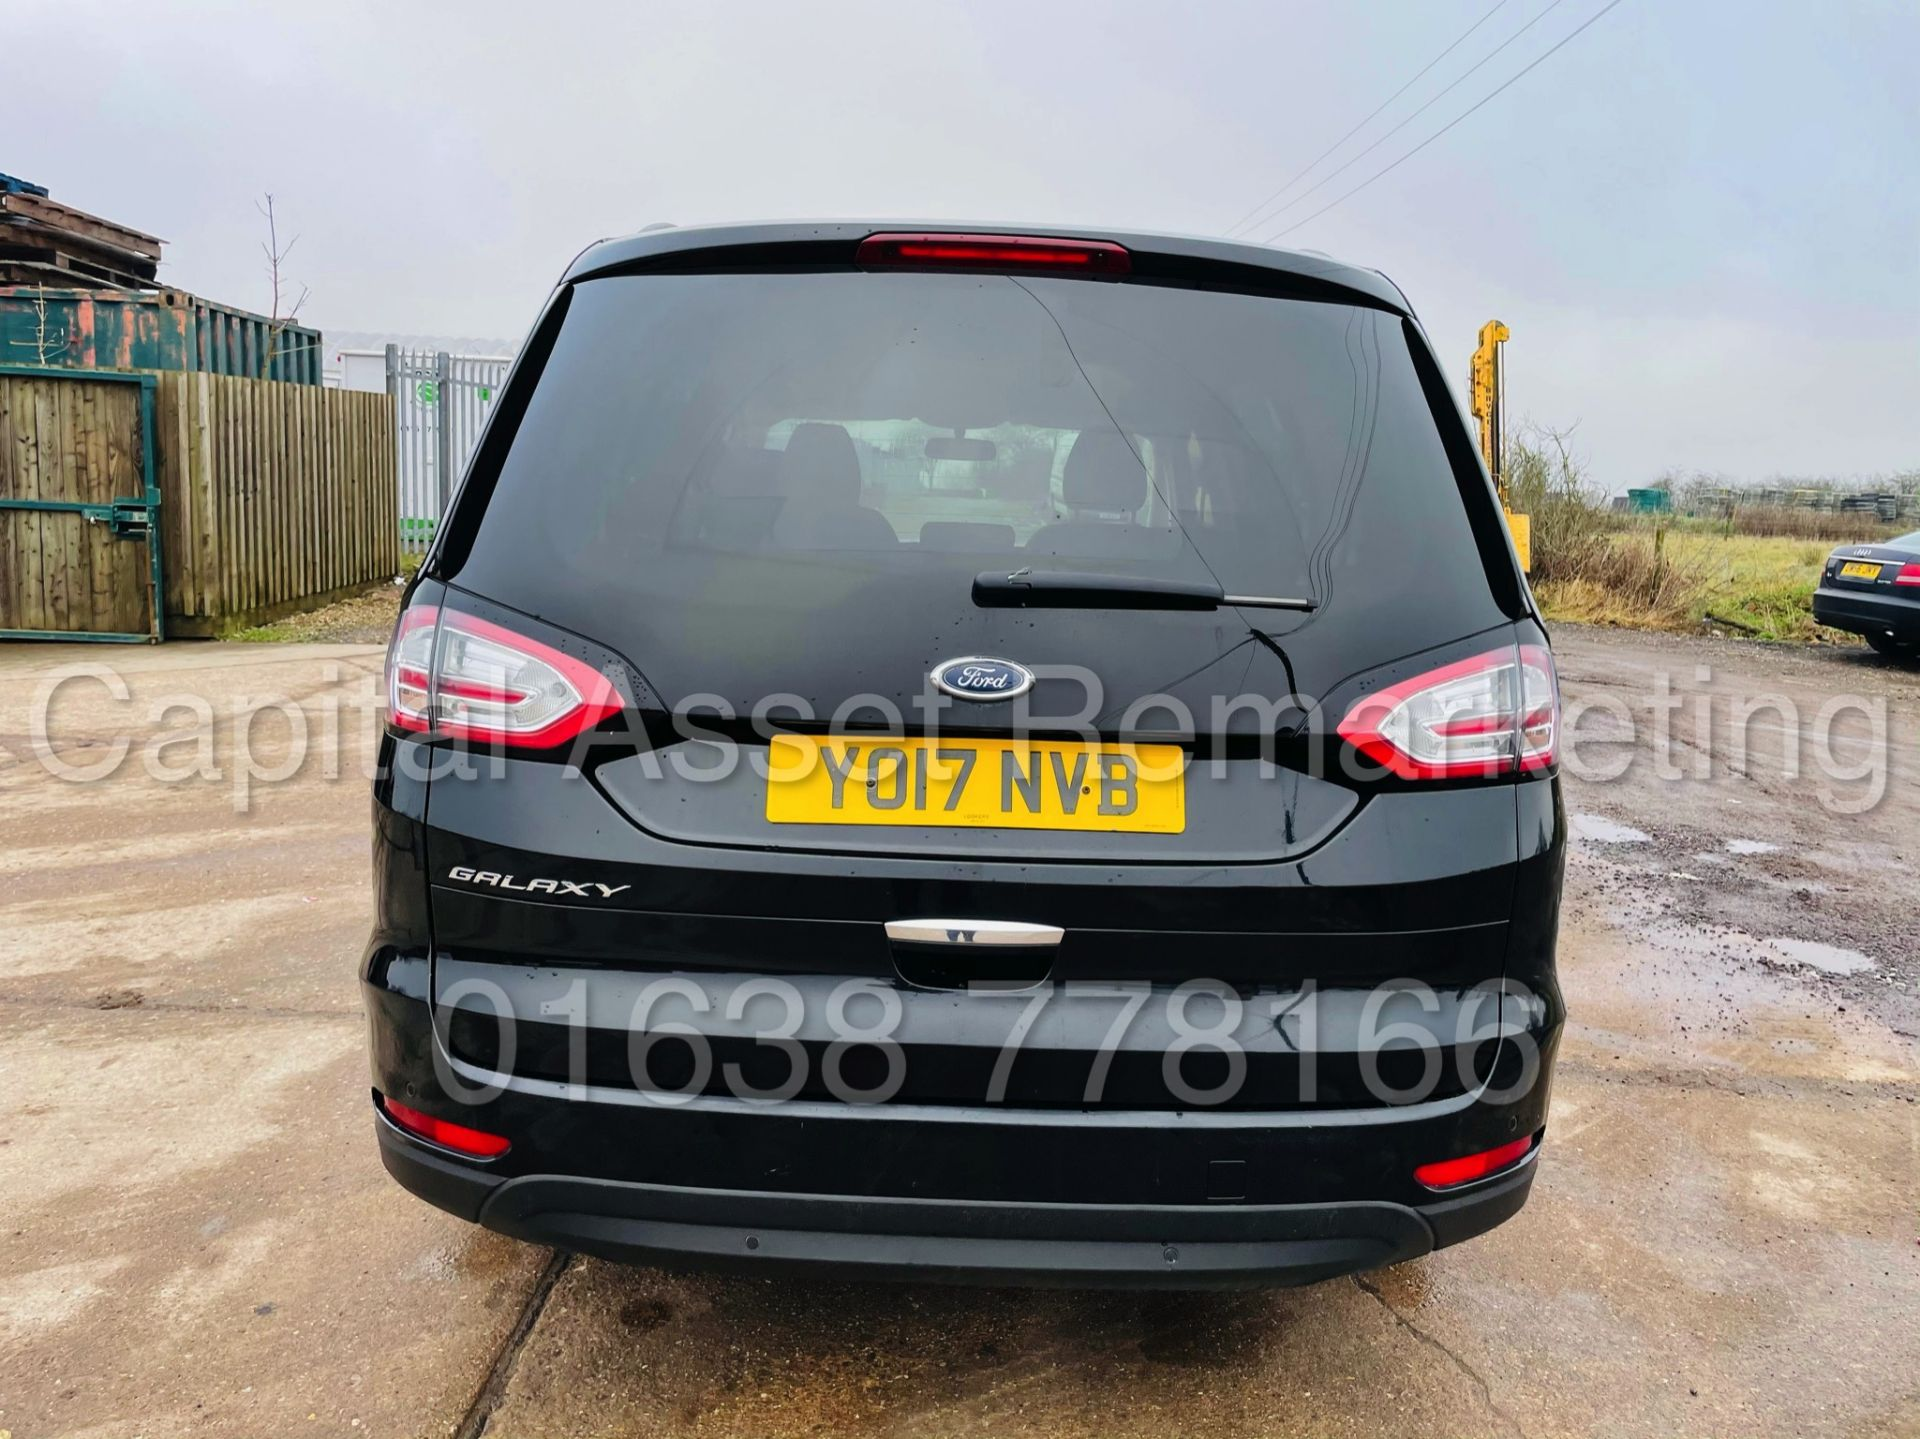 (On Sale) FORD GALAXY *ZETEC EDITION* 7 SEATER MPV (2017 - EURO 6) '2.0 TDCI - AUTO' (1 OWNER) - Image 11 of 48